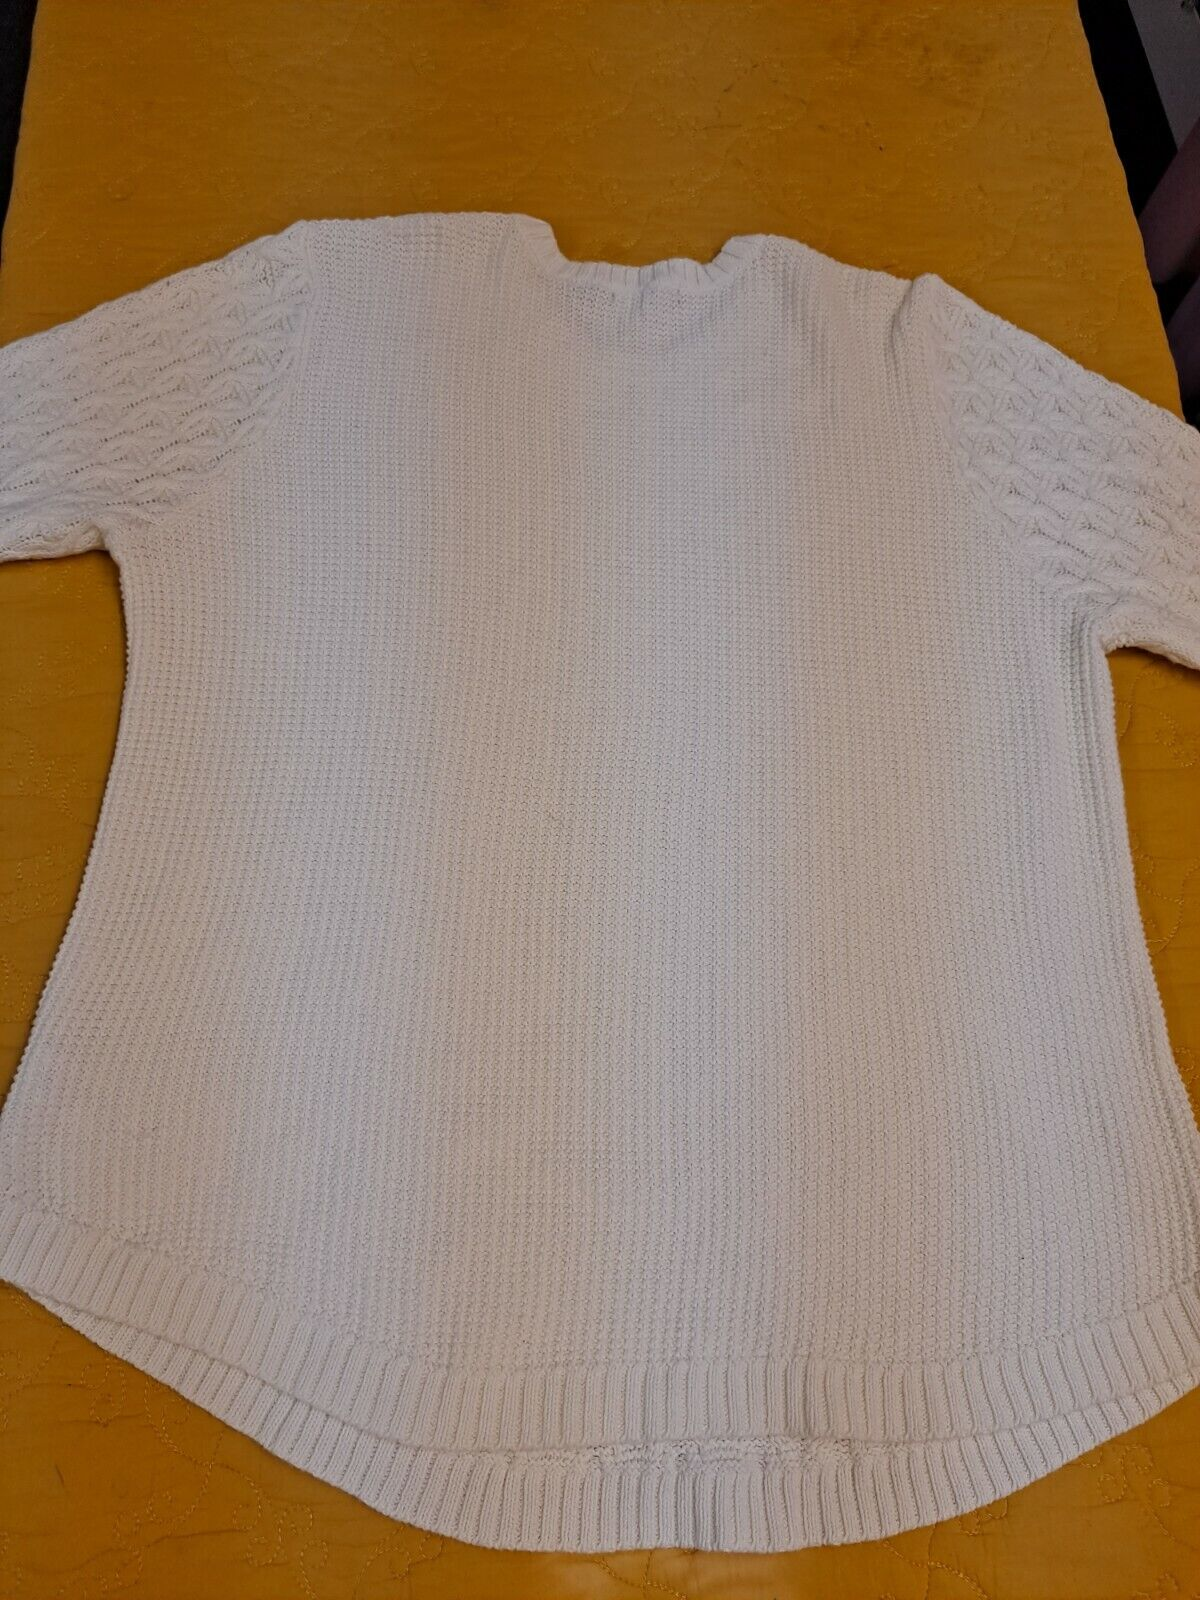 Women's Textured Knit Sweater Cable Knit Pullover… - image 6